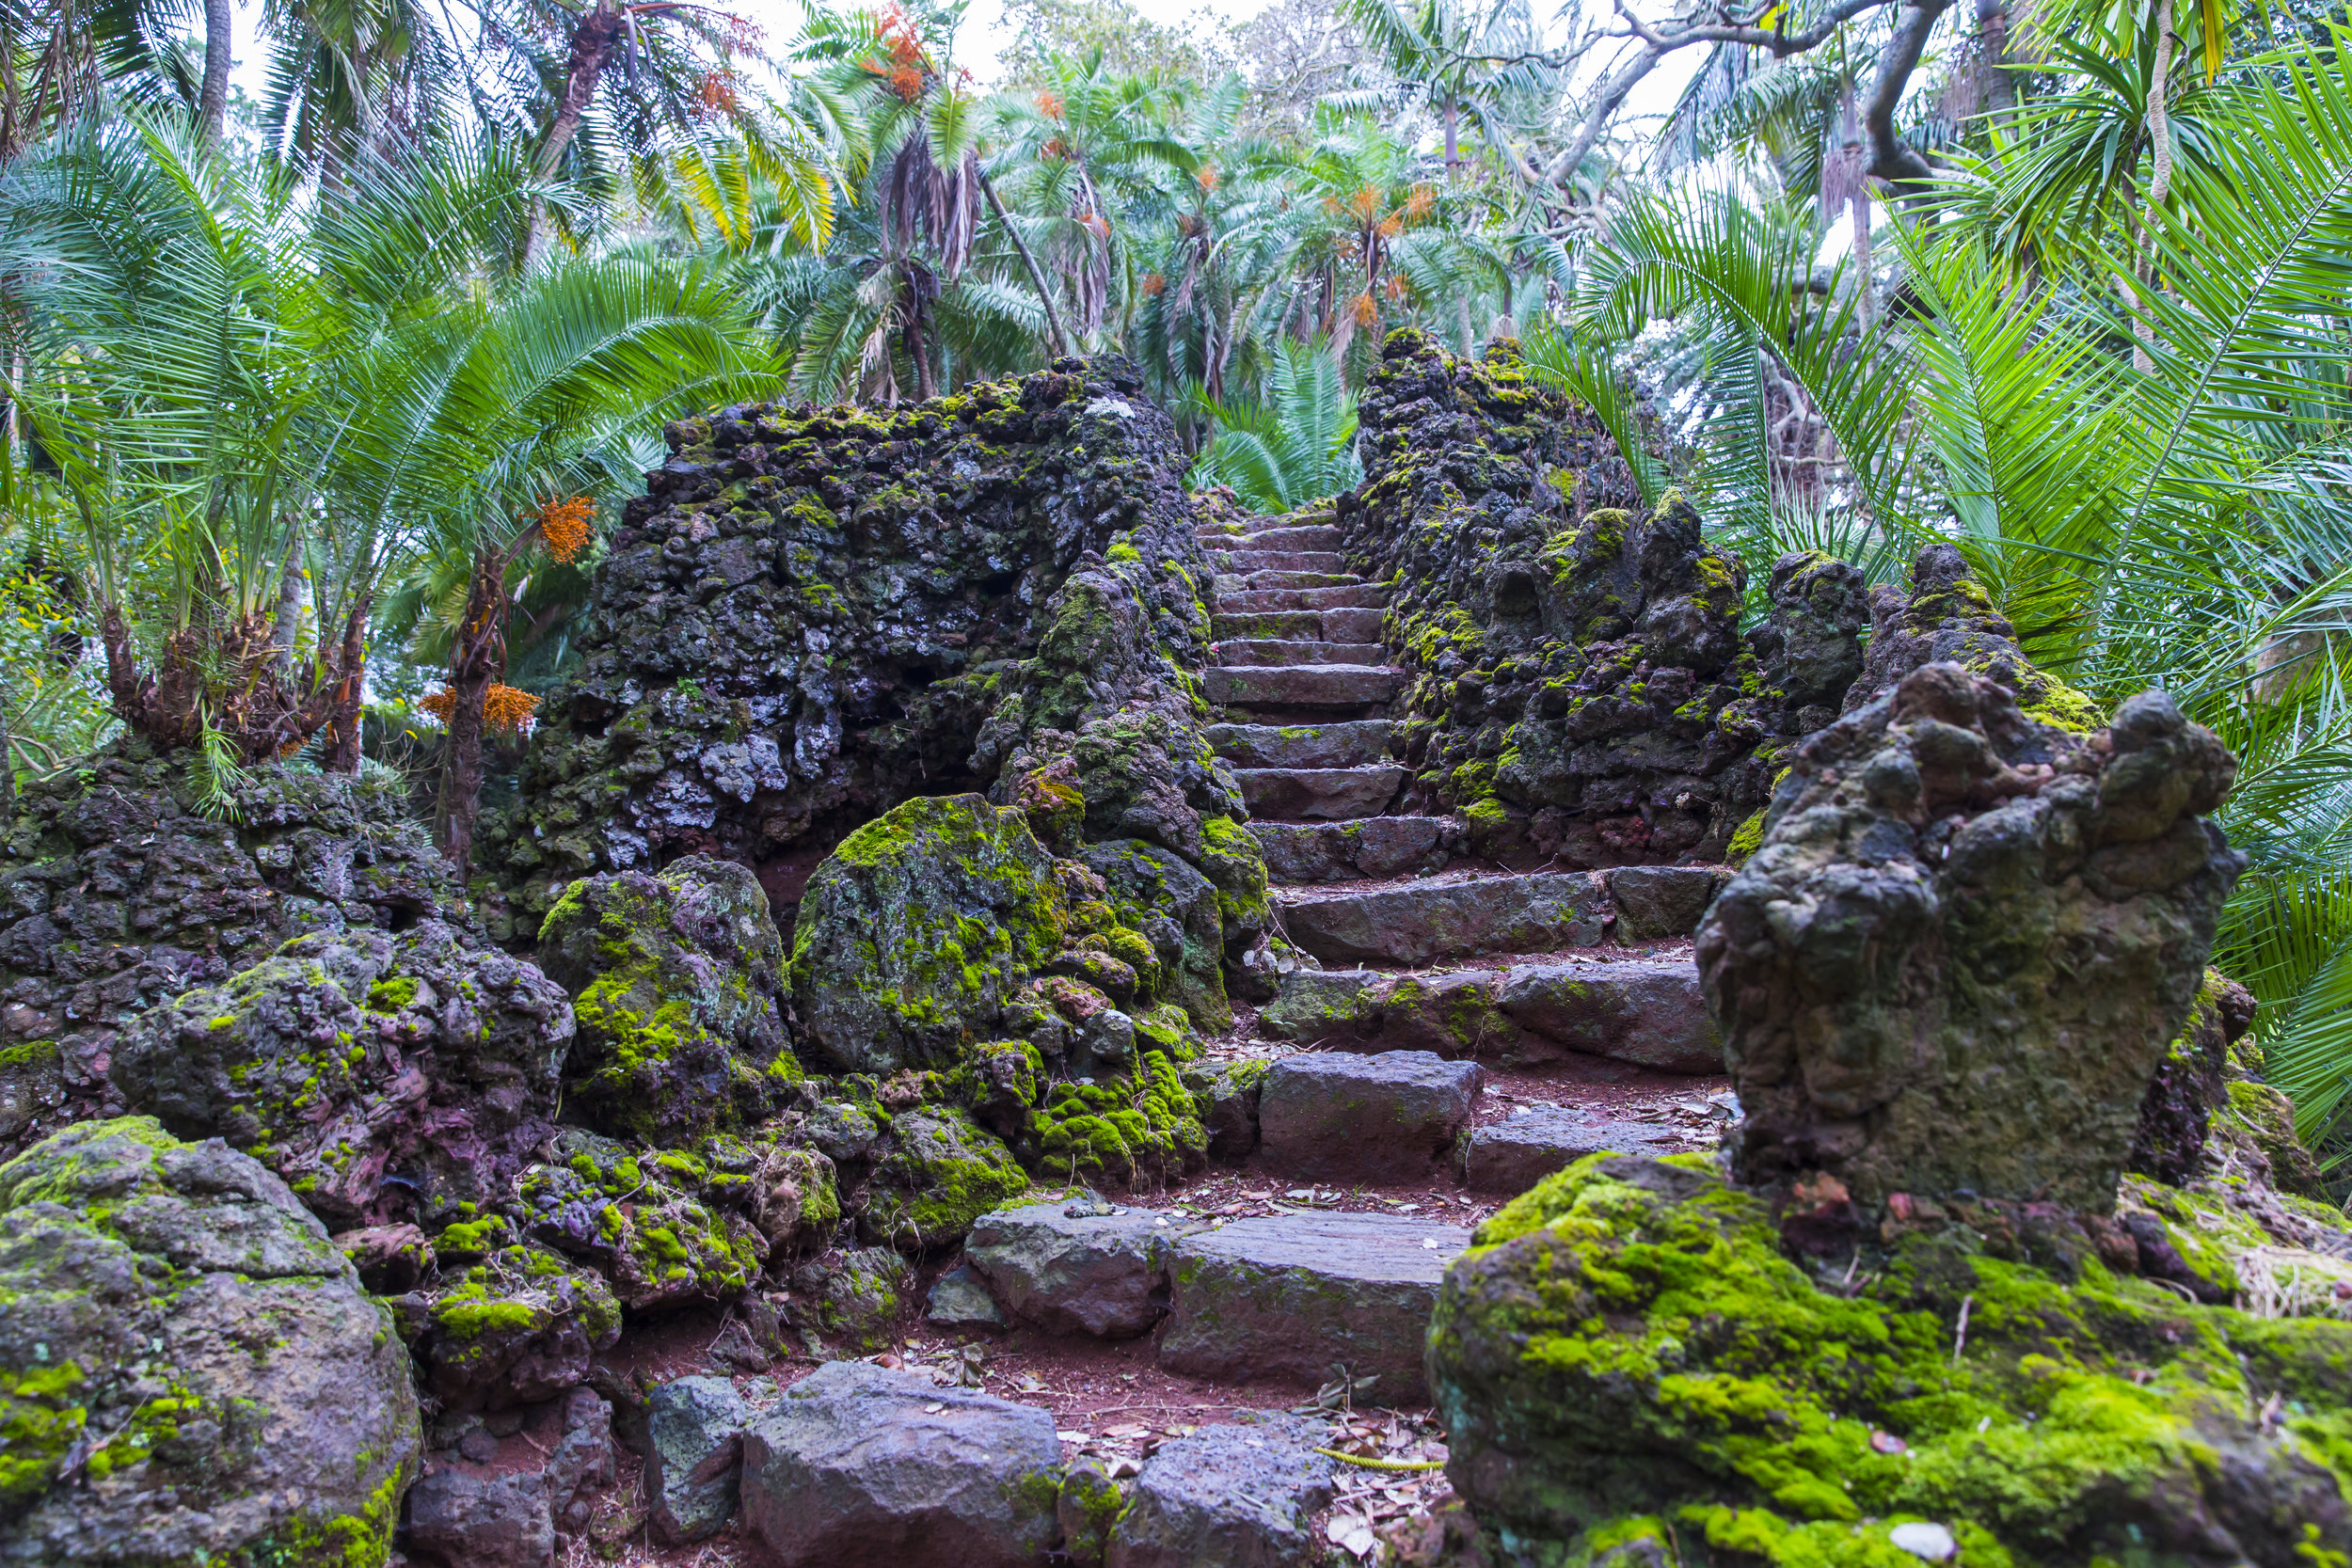 Jardim António Borges, built 1858–1861, this urban botanical garden with trails & grottoes showcases rare & exotic plants